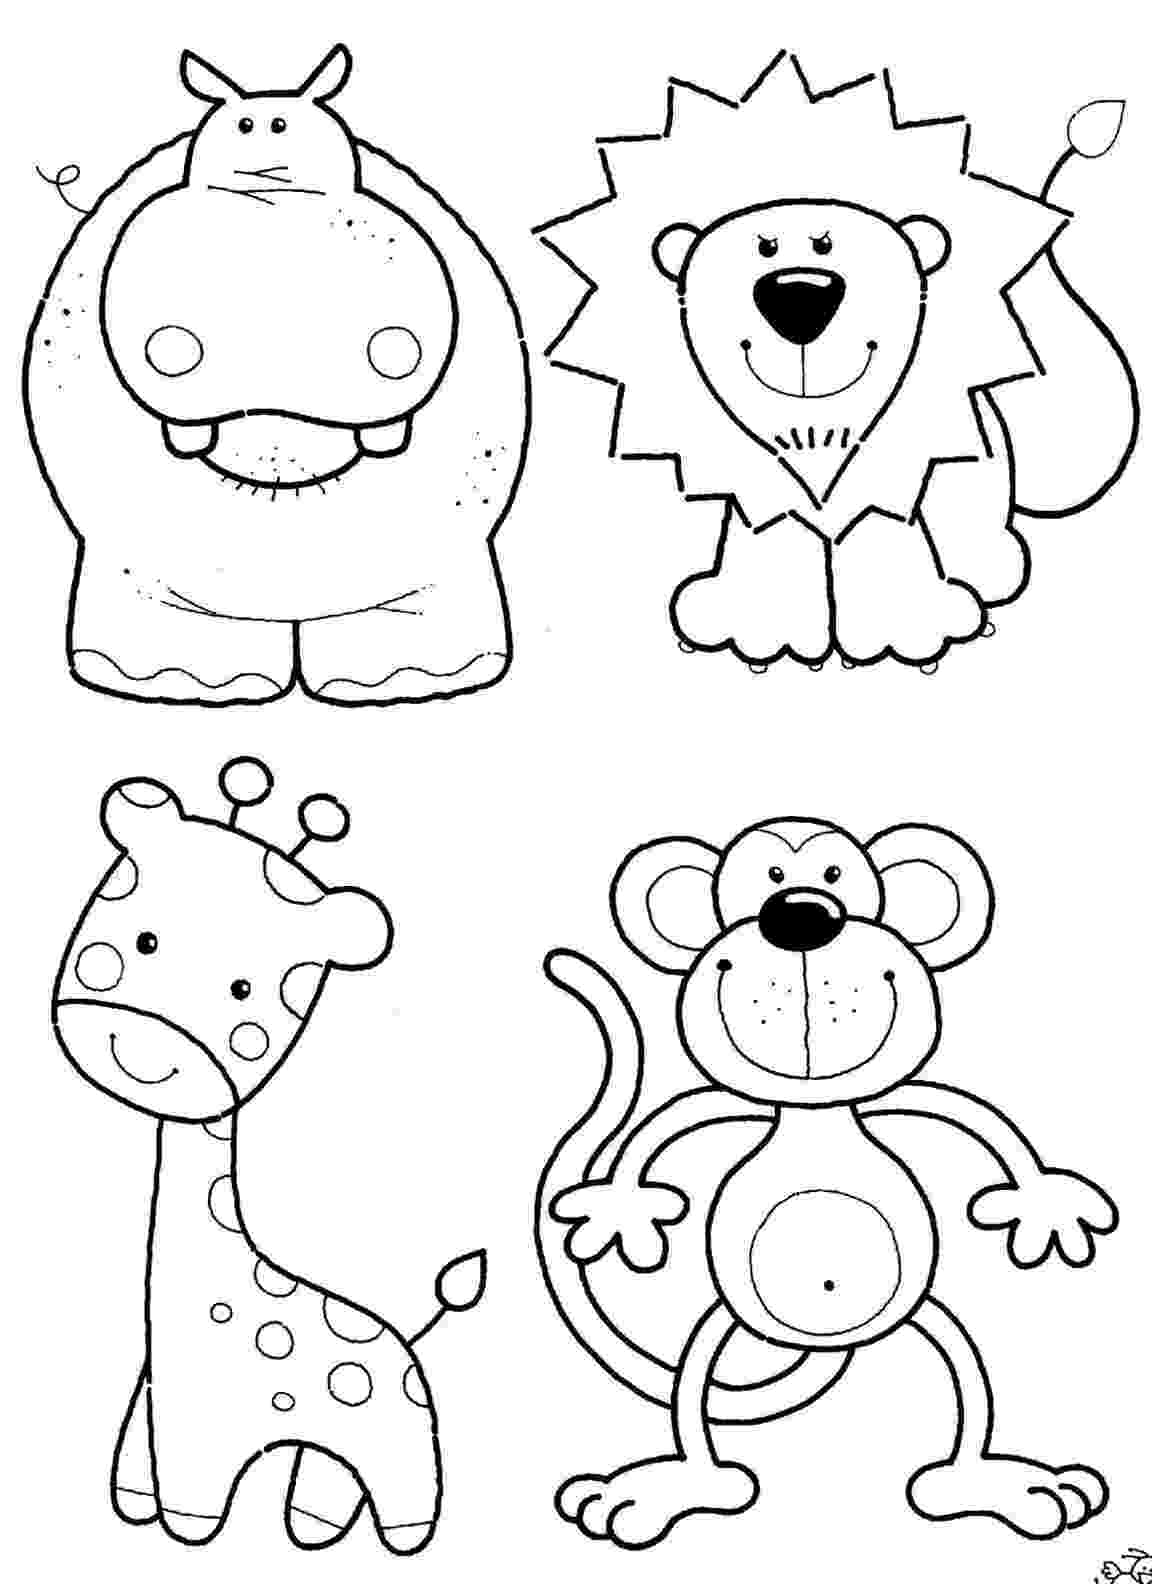 free animal colouring book jungle coloring pages best coloring pages for kids book animal colouring free